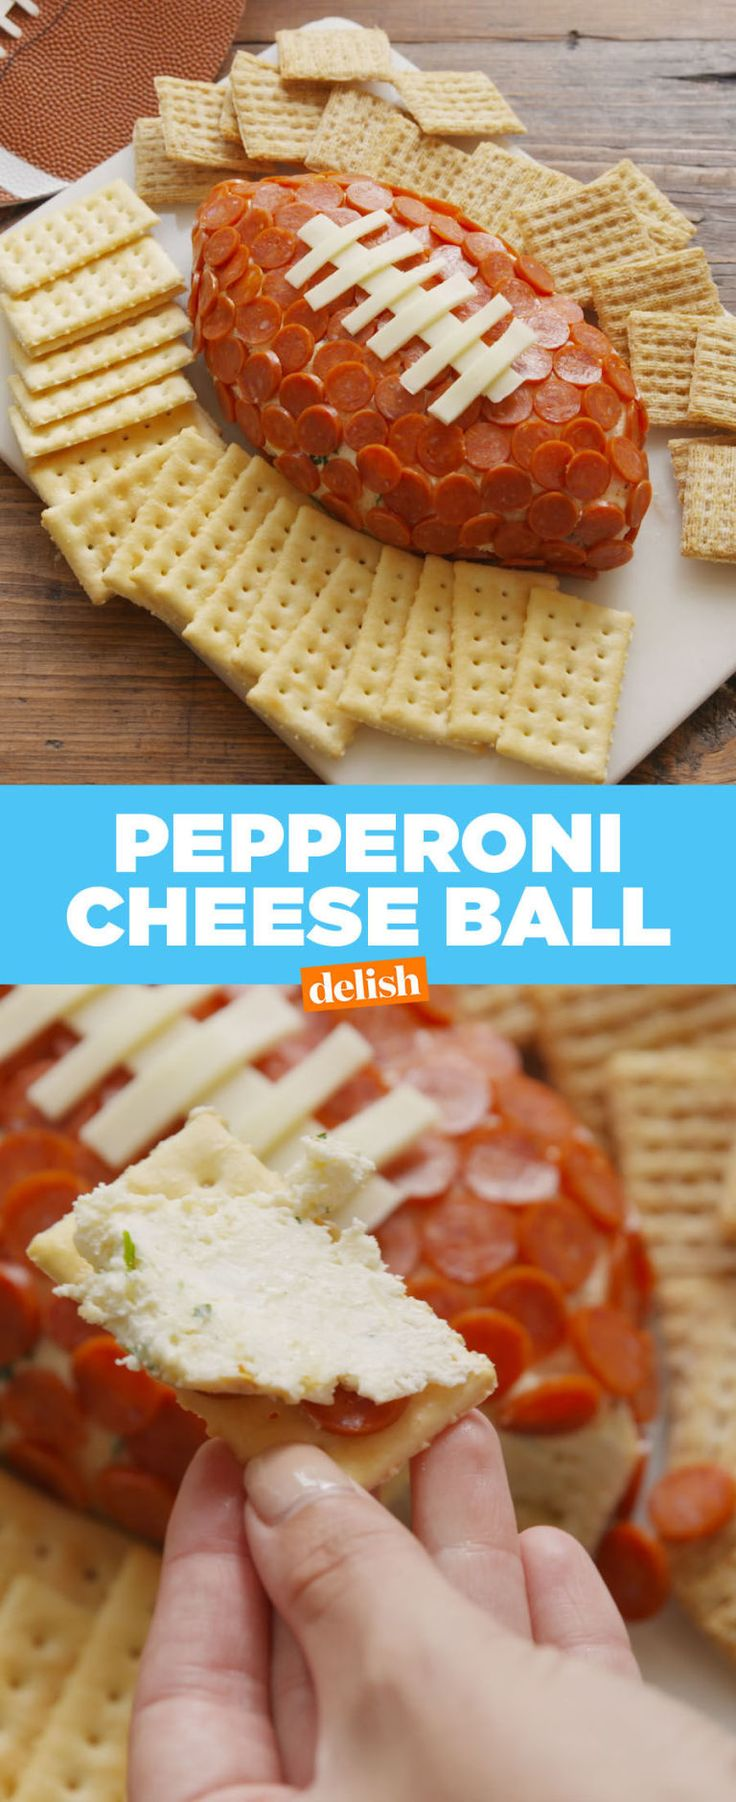 This Pepperoni Cheese Ball Is *The* Game Day Snack